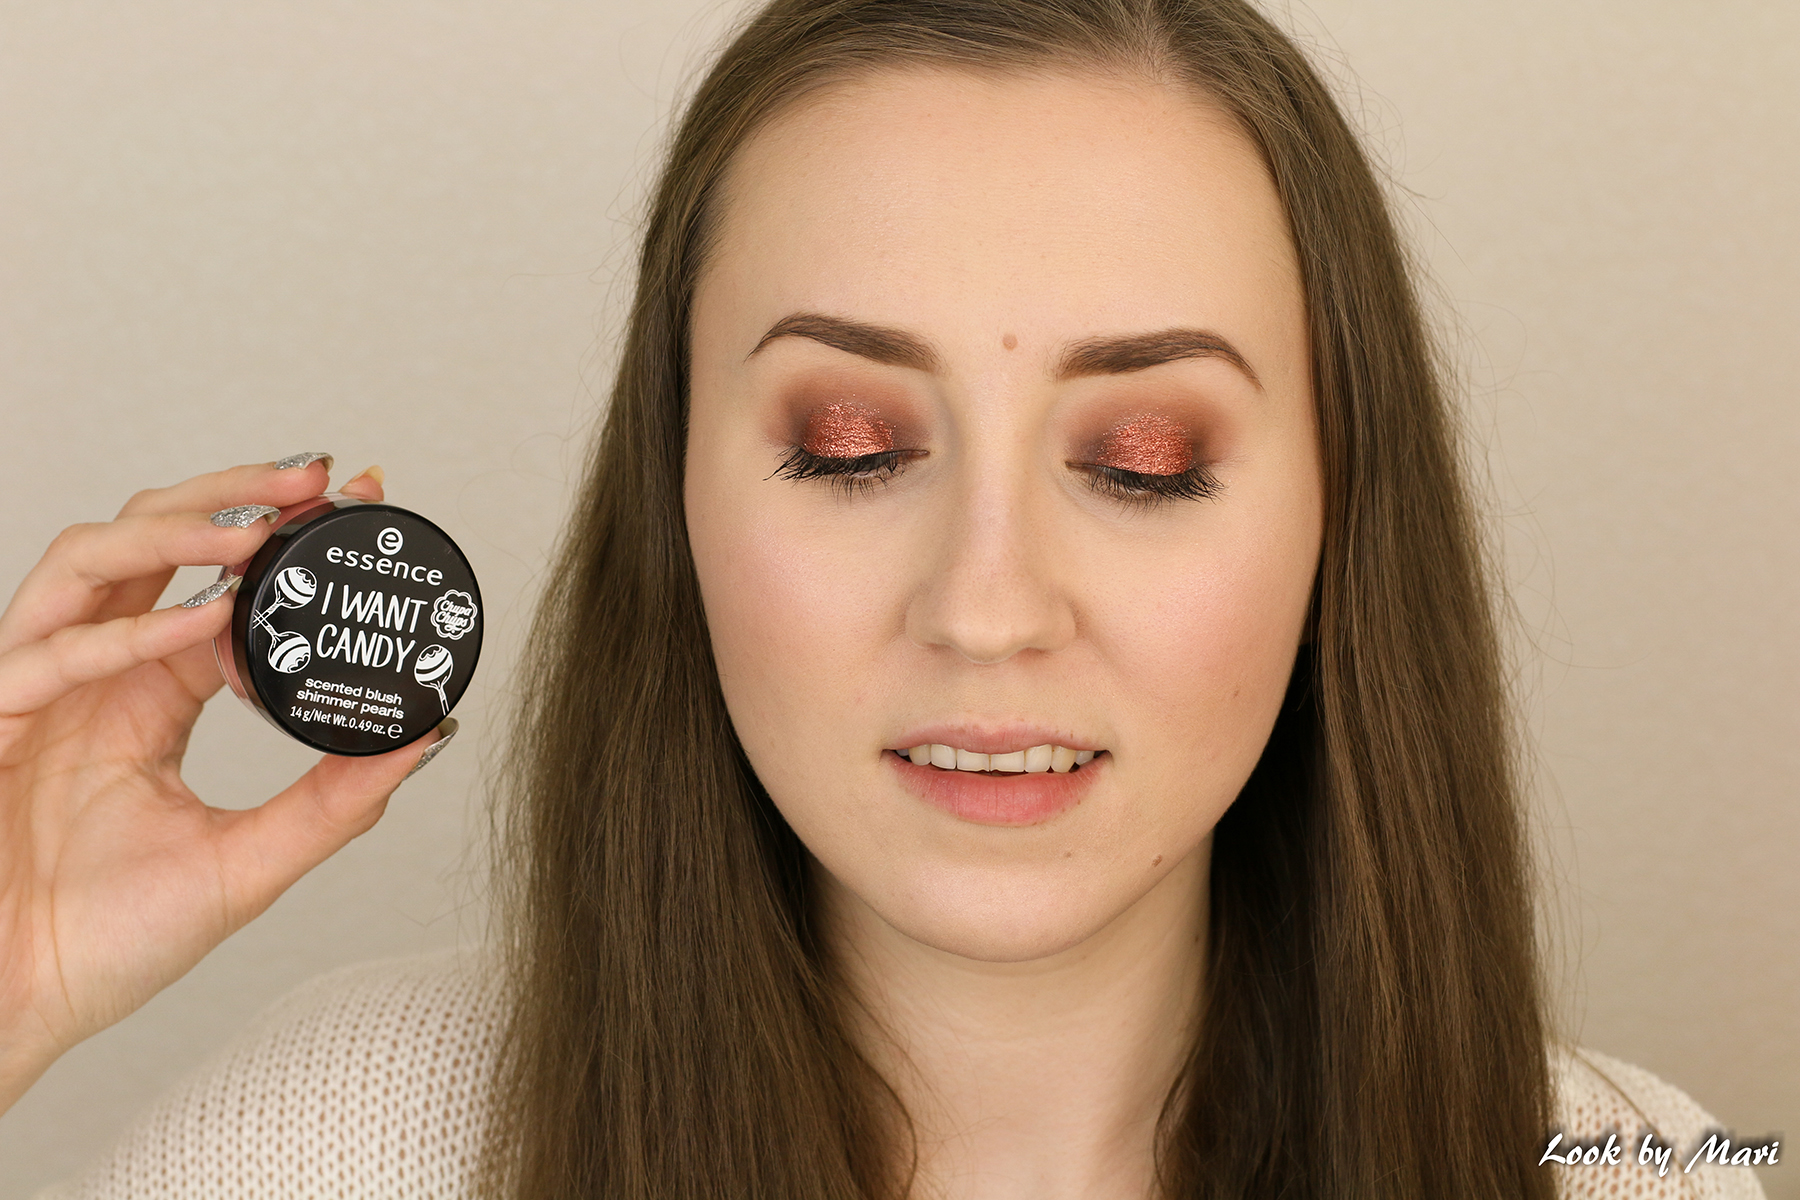 13 essence i want candy scented blush shimmer pearls review kokemuksia